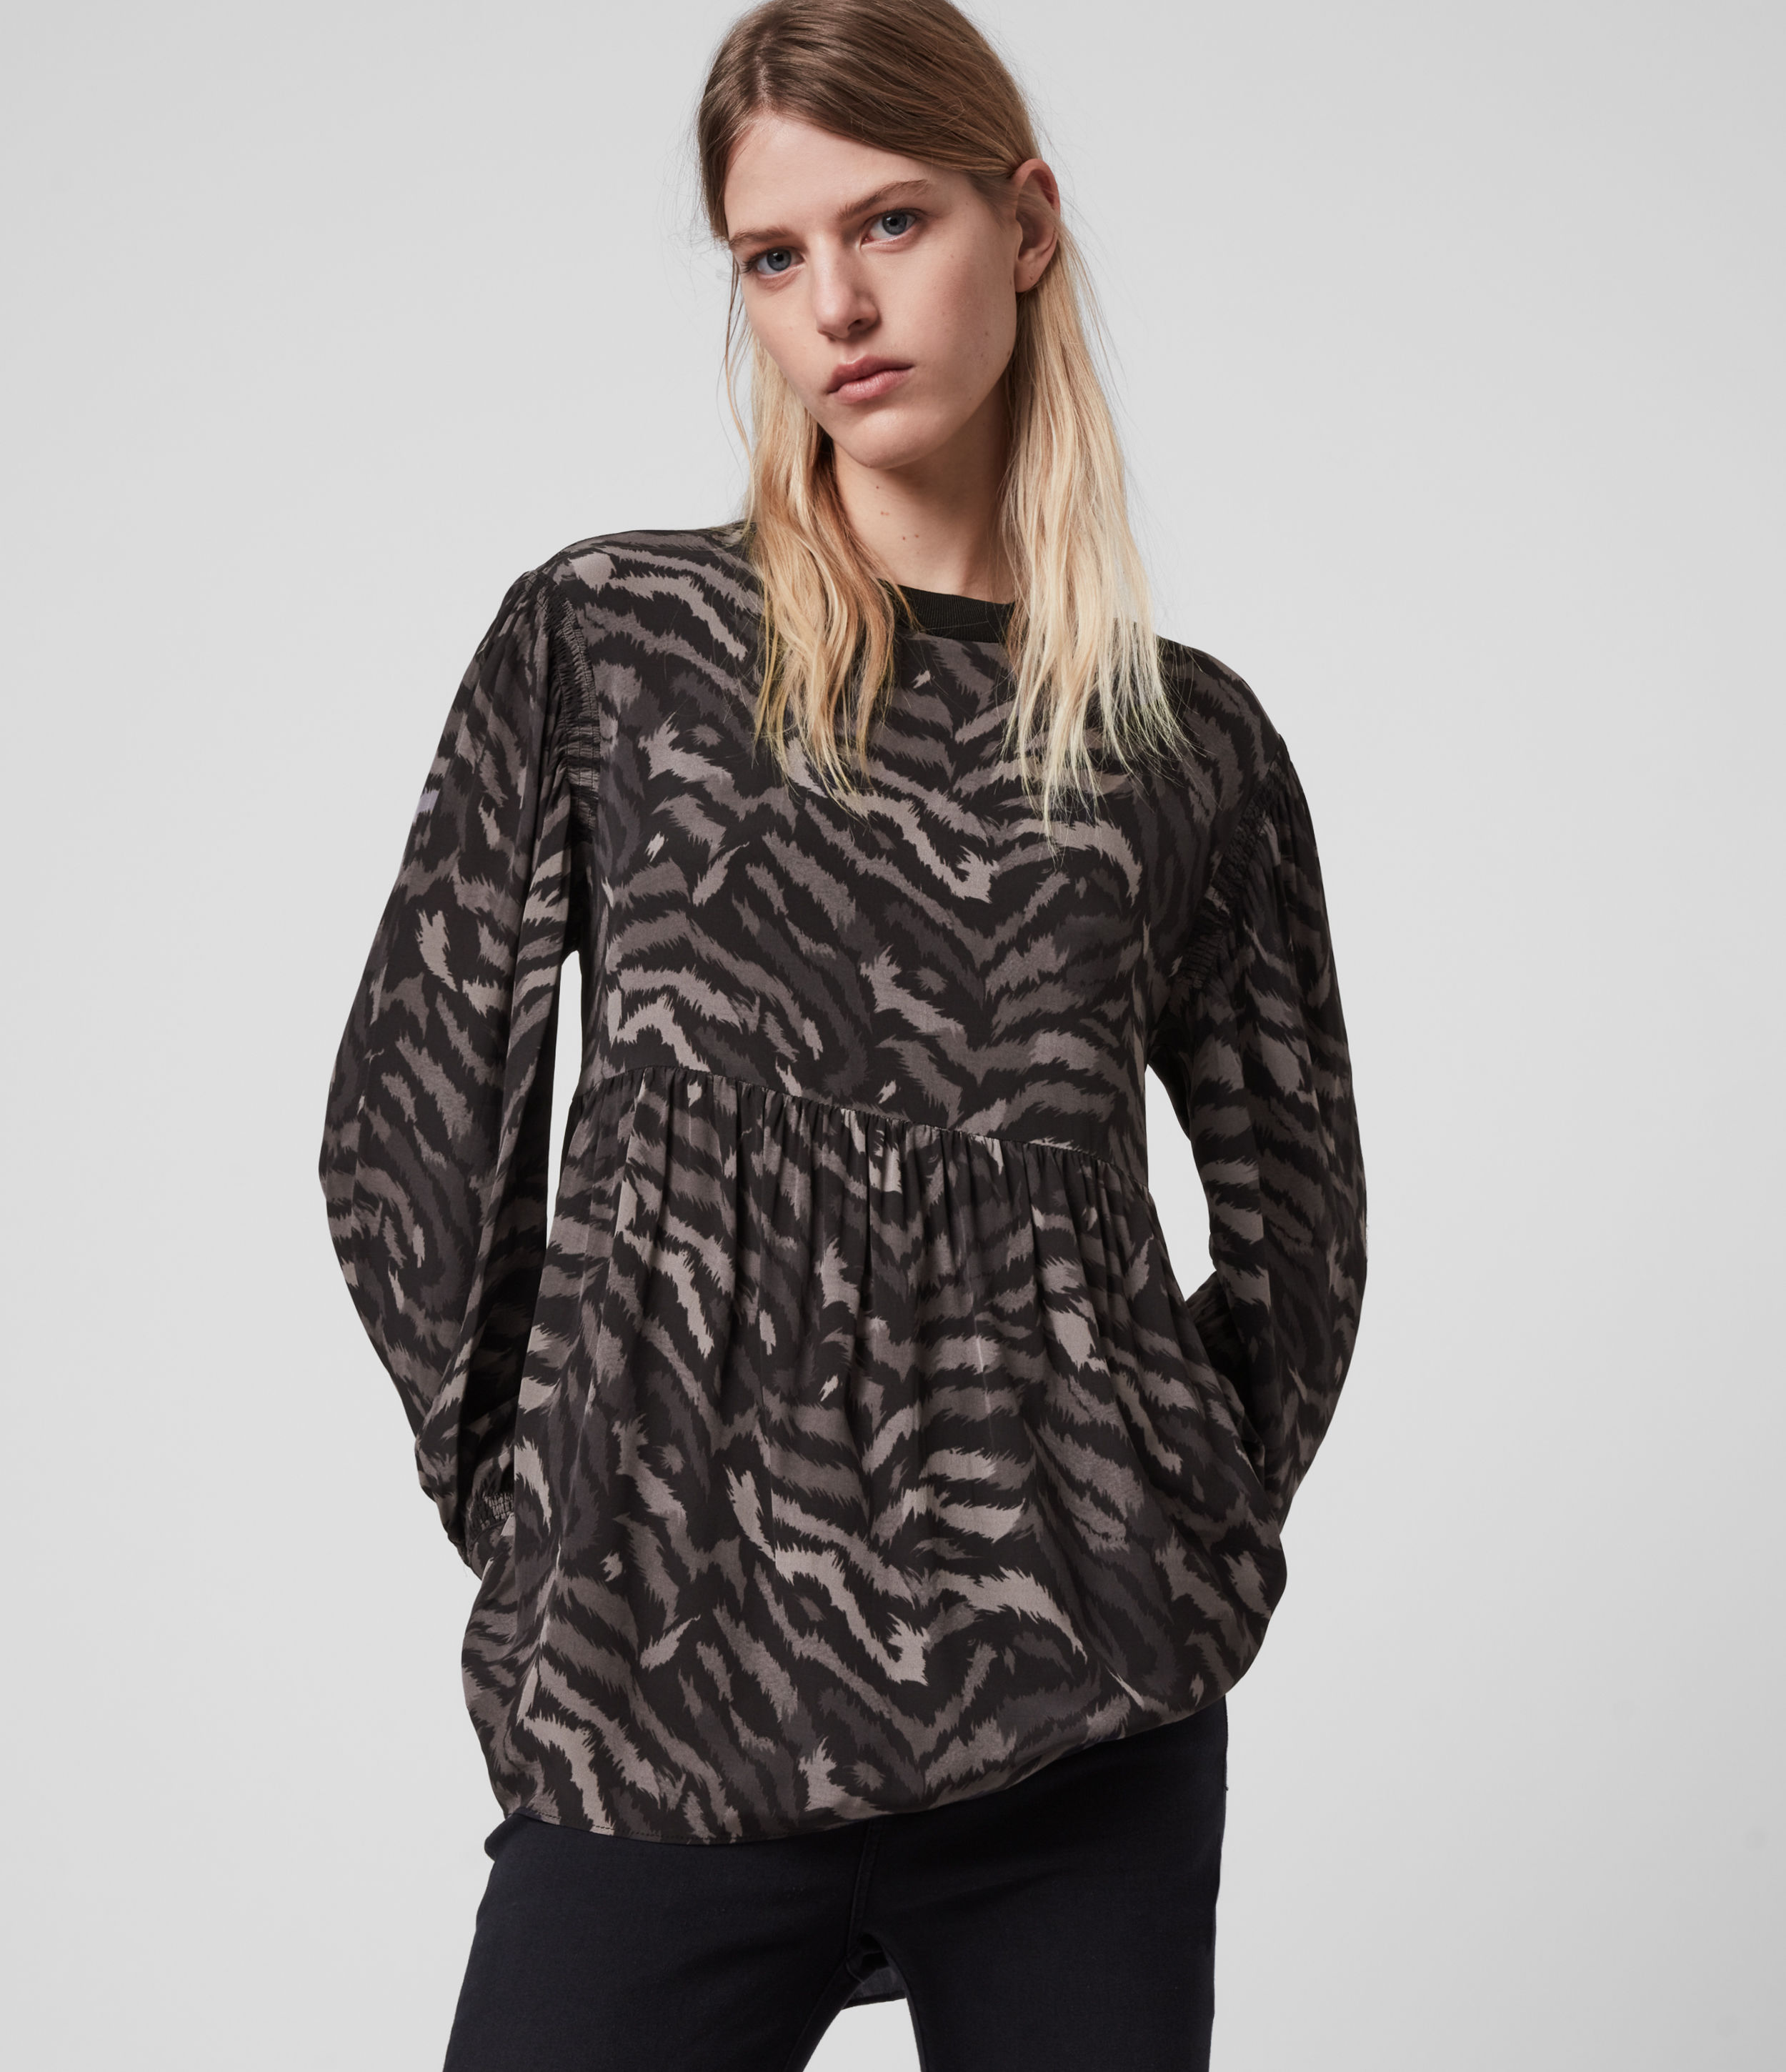 AllSaints Women's Remix Print Relaxed Fit Fayre Top, Grey and Black, Size: XS